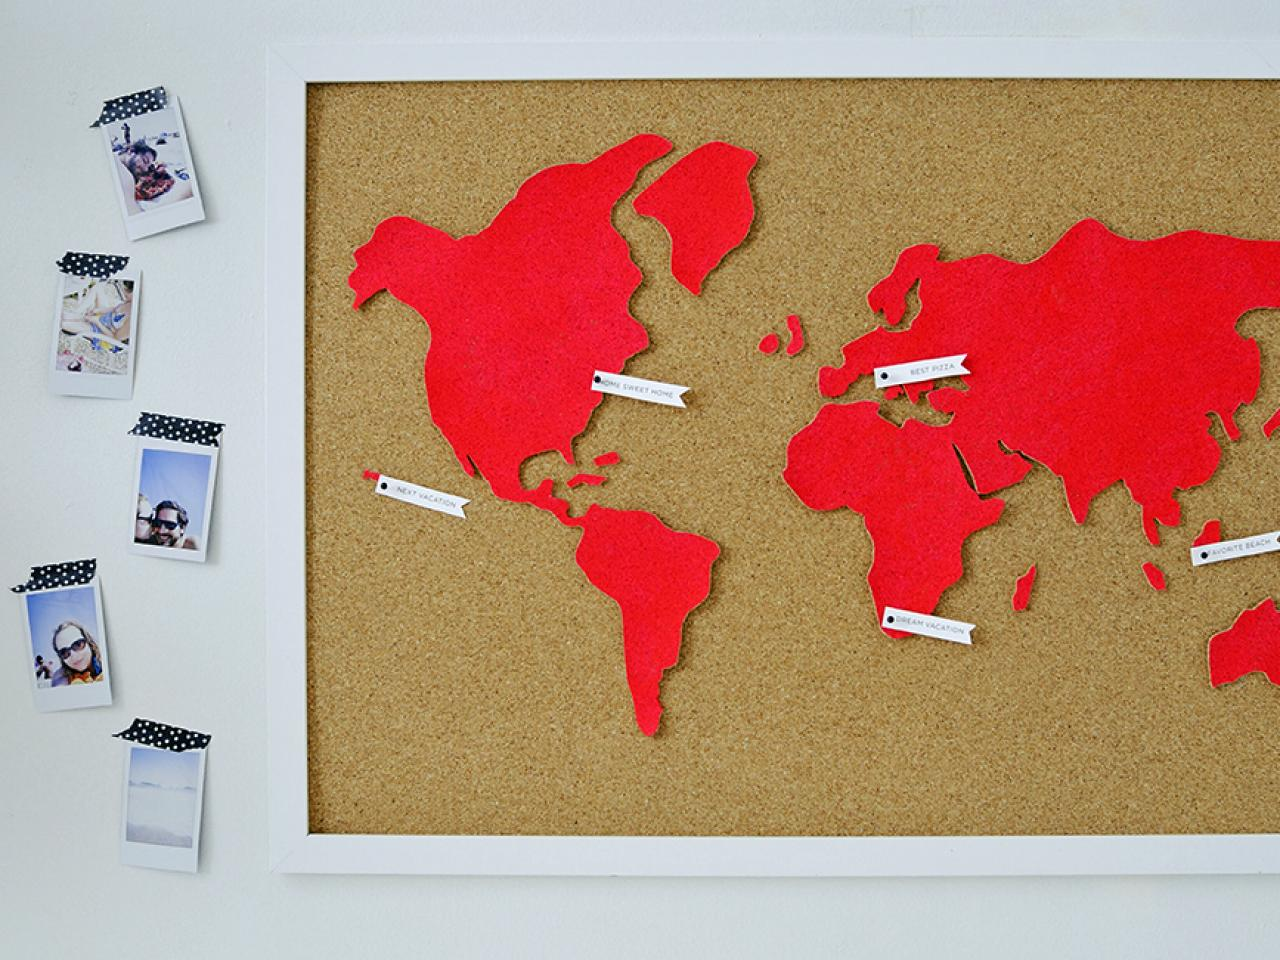 Diy wall art make a custom corkboard world map hgtv hang and enjoy gumiabroncs